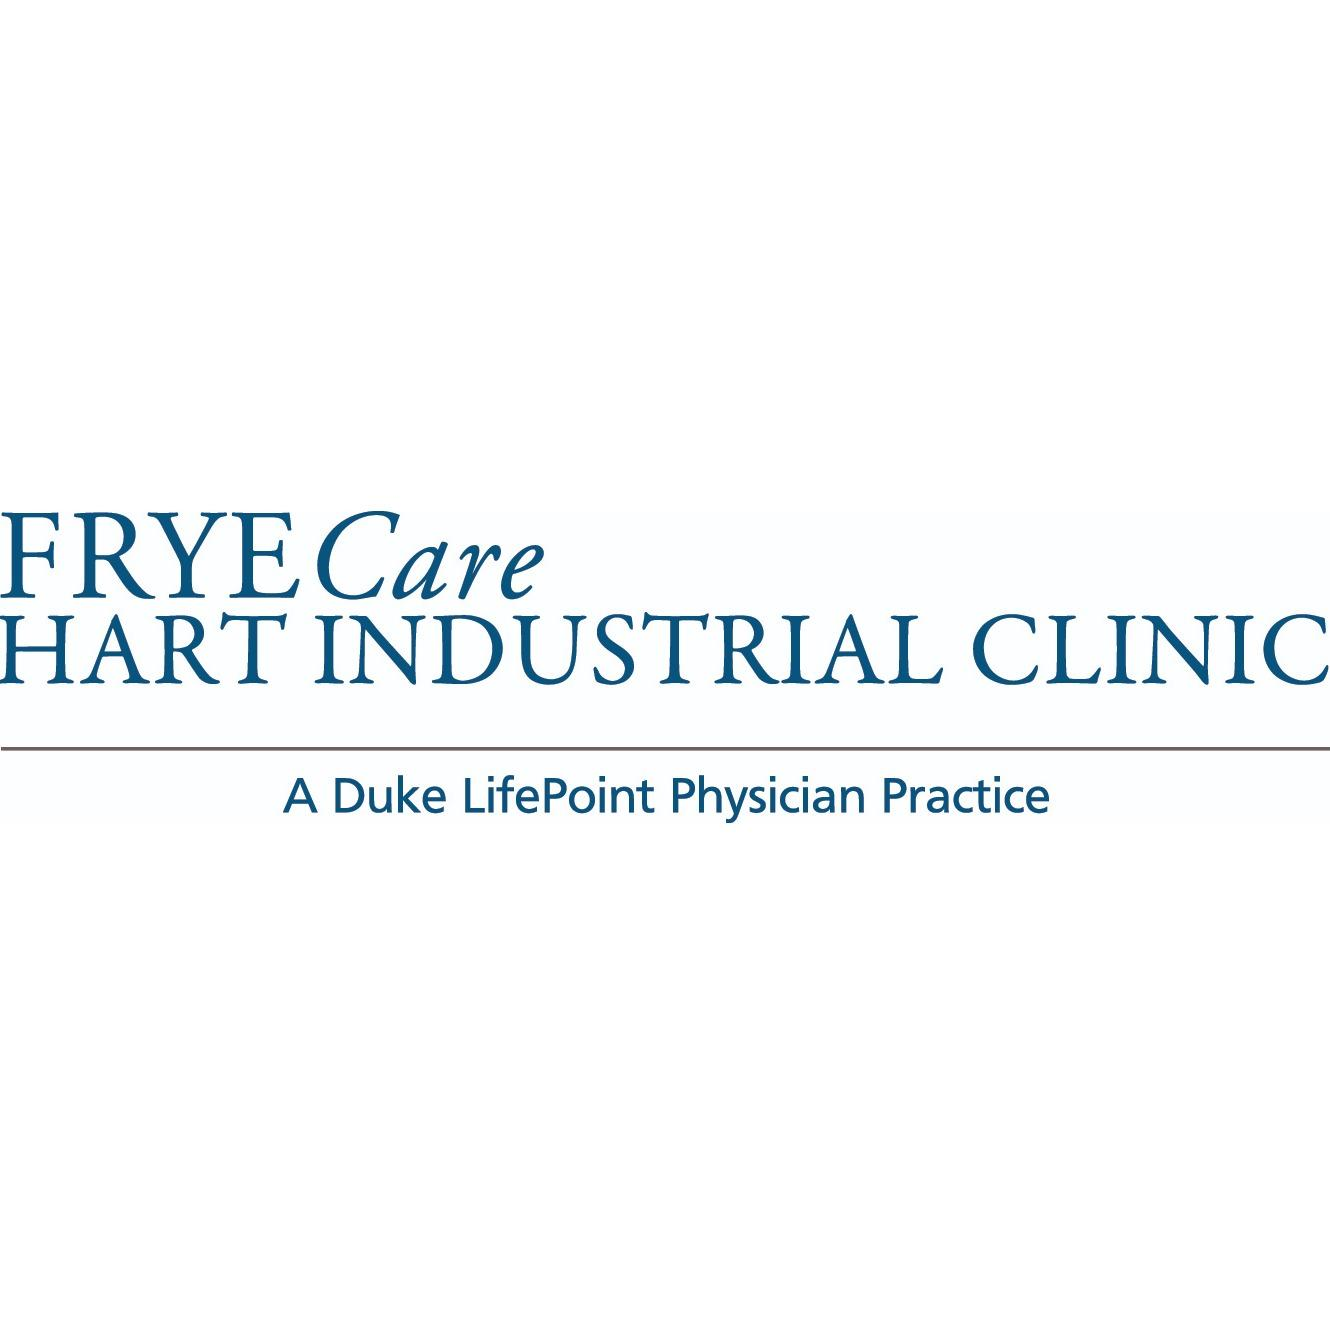 FryeCare Hart Industrial Clinic image 3